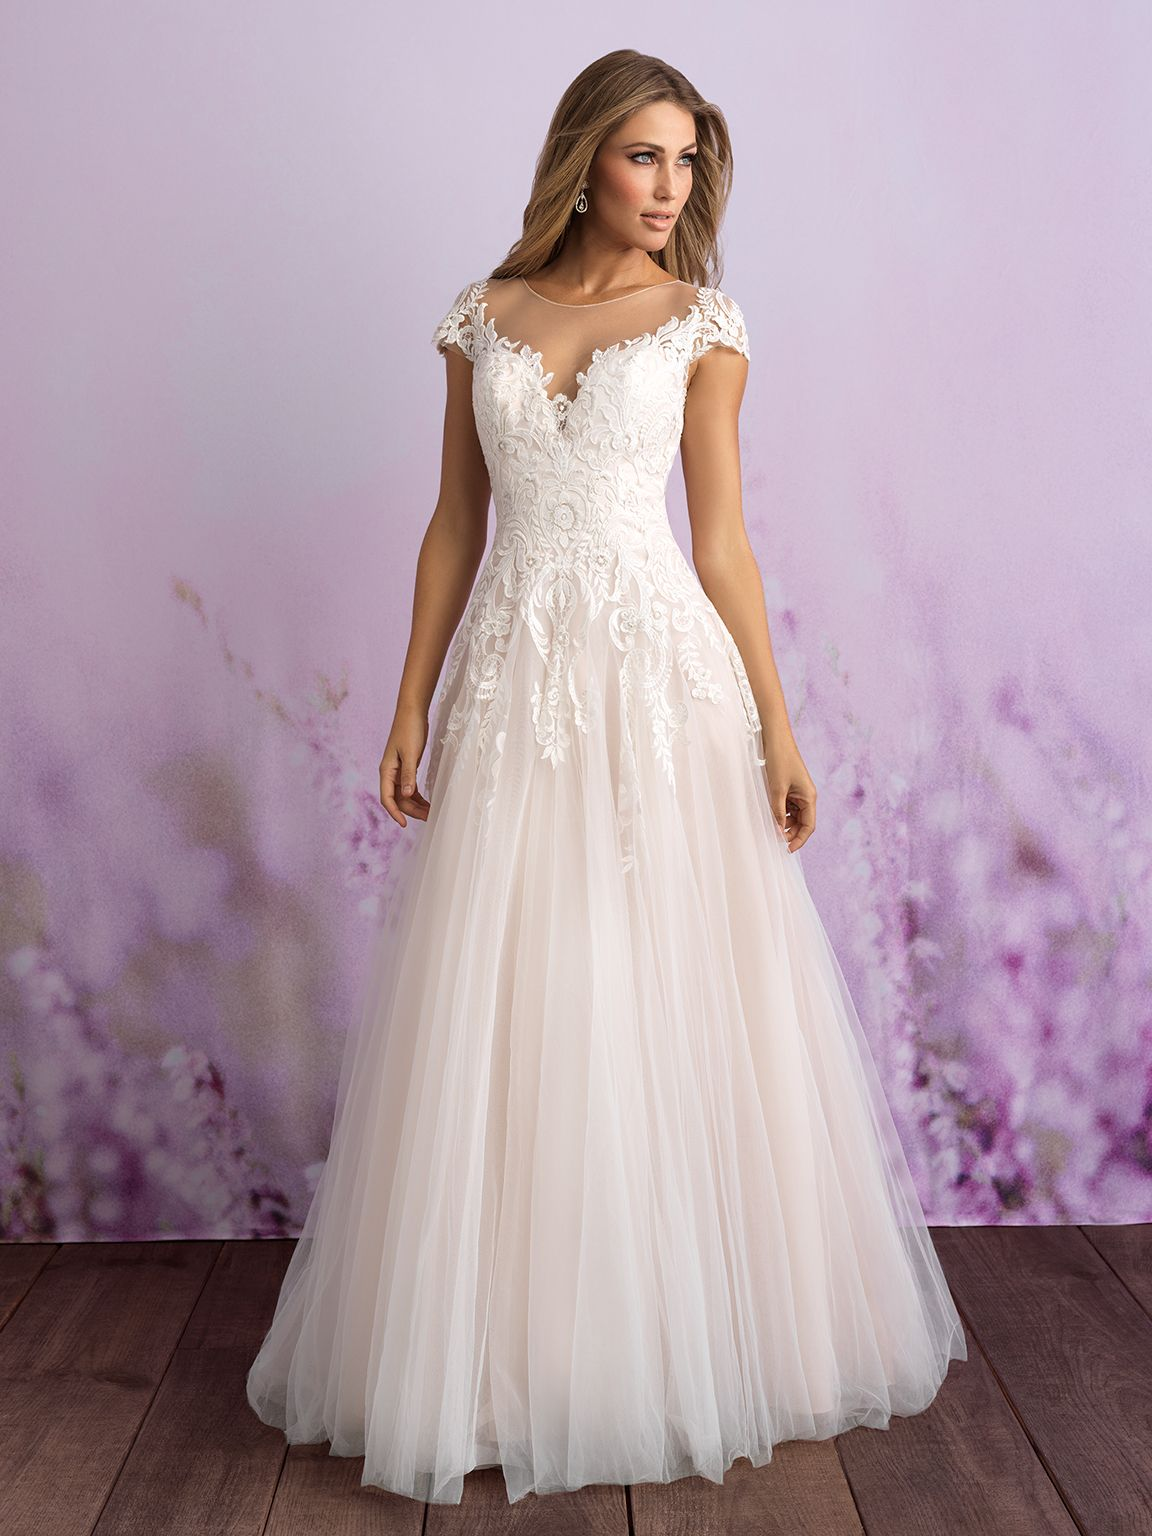 3117 Romantic And Timeless This Tulle Gown Features Illusion Cap